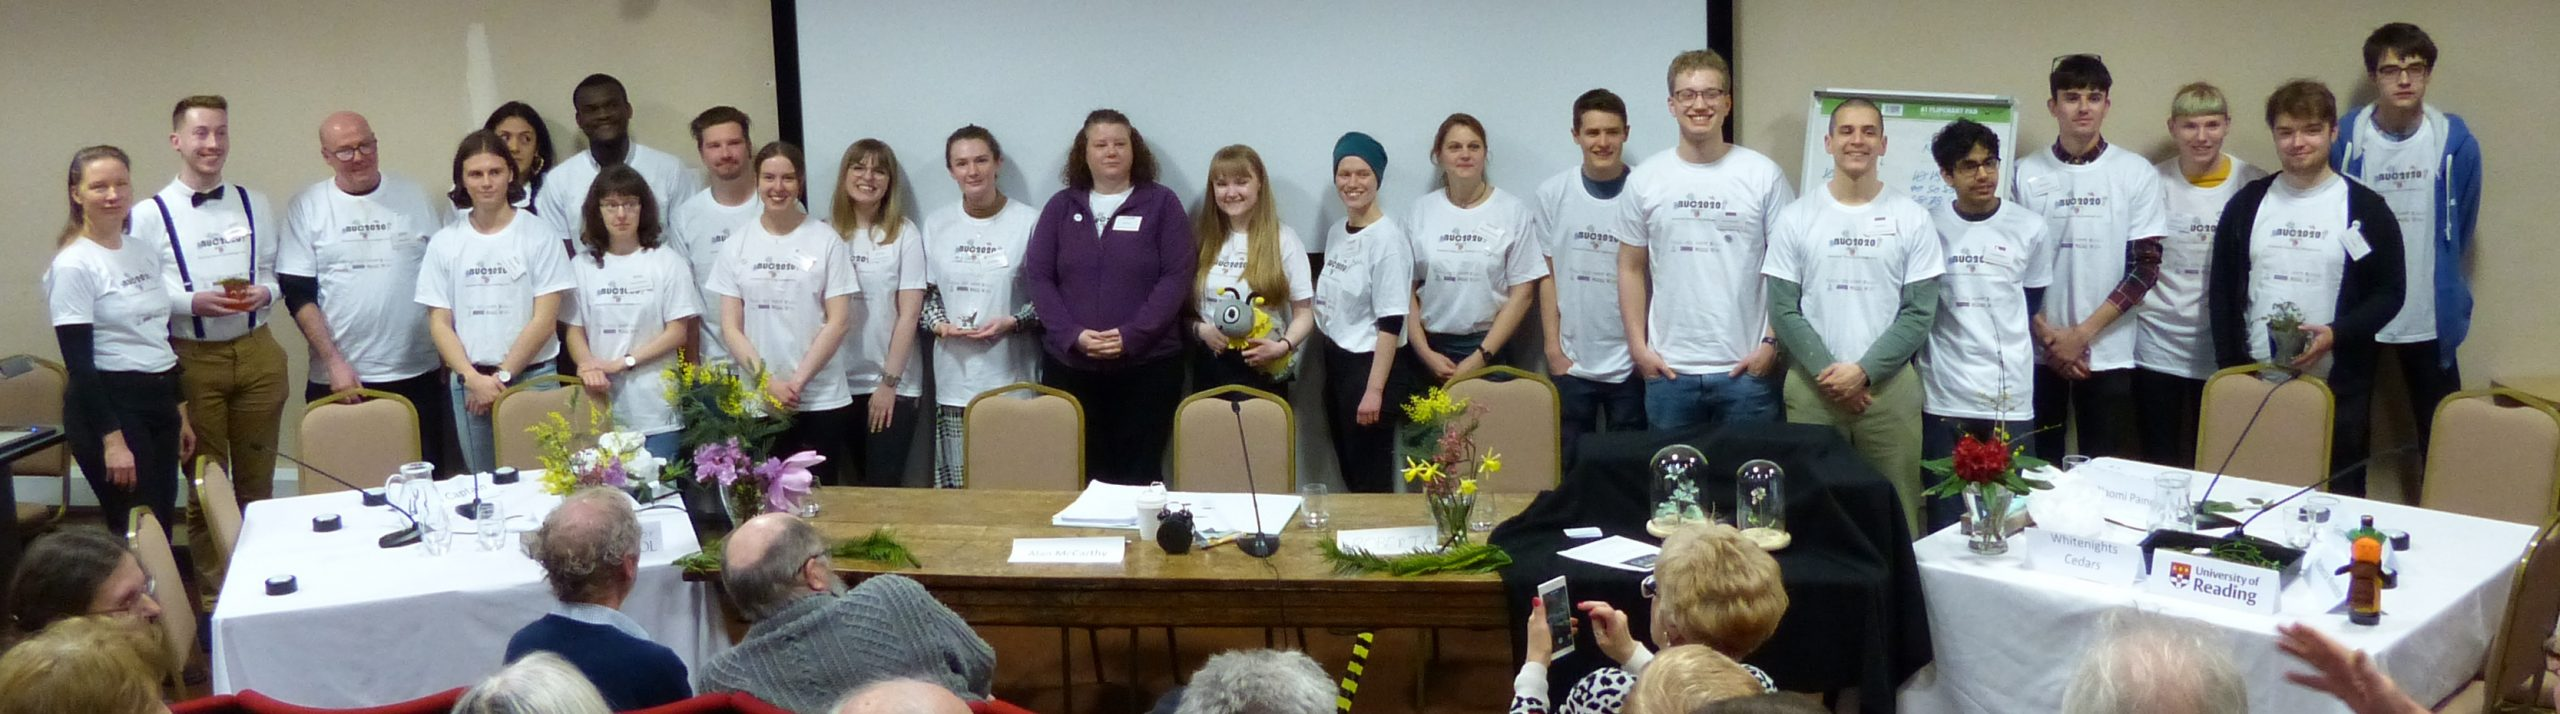 Reading botanists bring home the Botanical University Challenge trophy – for the third time!